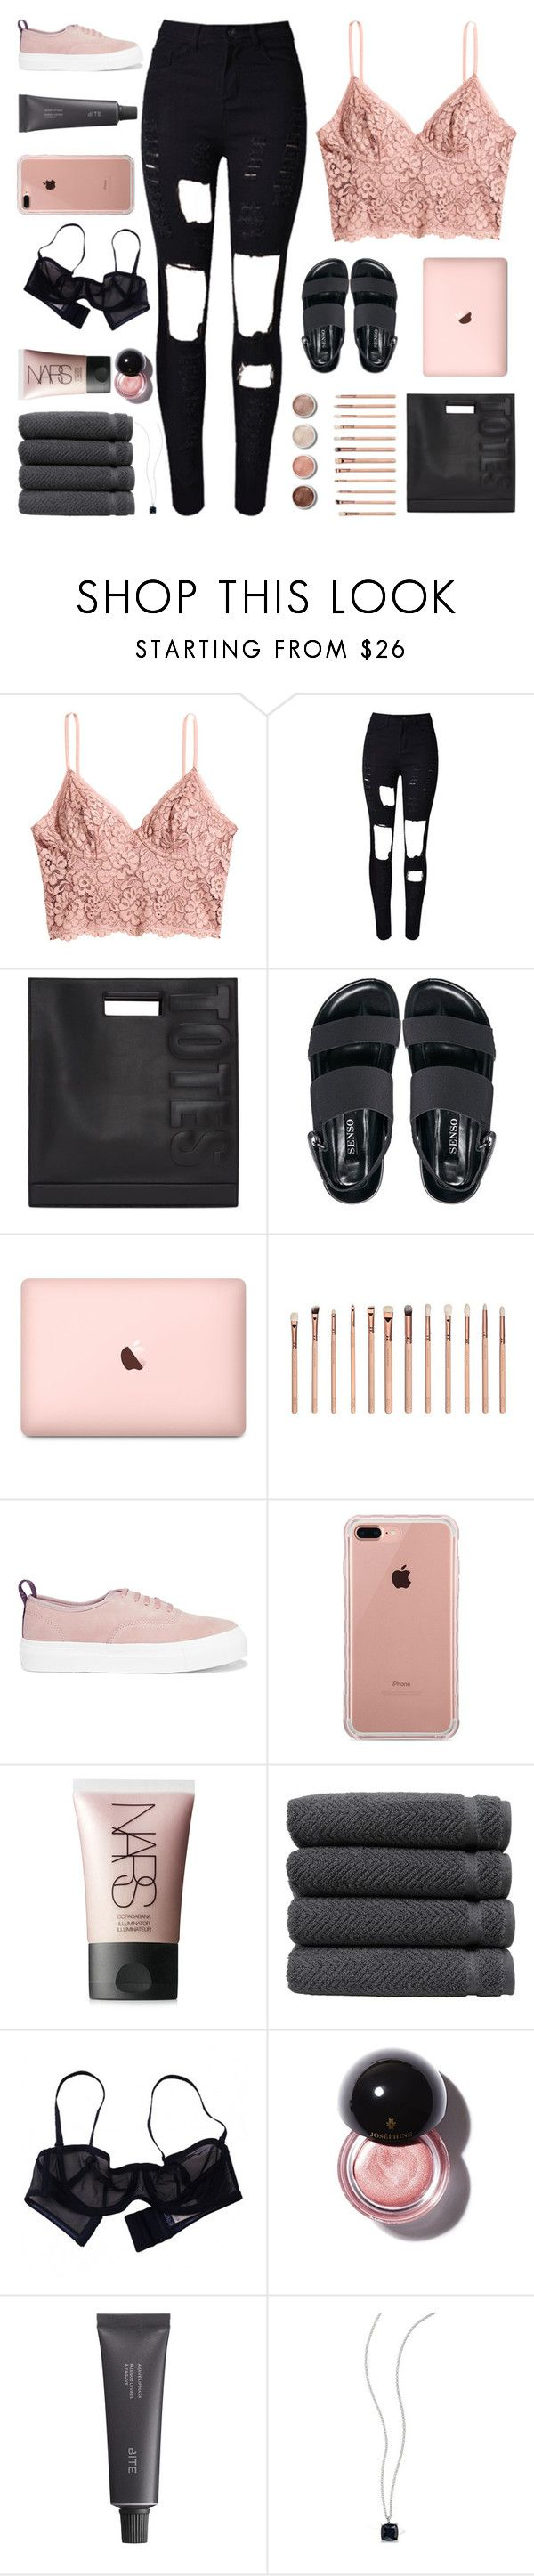 """""""LORD SAVE ME, MY DRUG IS MY BABY"""" by s-erene ❤ liked on Polyvore featuring H&M, WithChic, 3.1 Phillip Lim, Senso, ZOEVA, Terre Mère, Eytys, Belkin, NARS Cosmetics and Linum Home Textiles"""